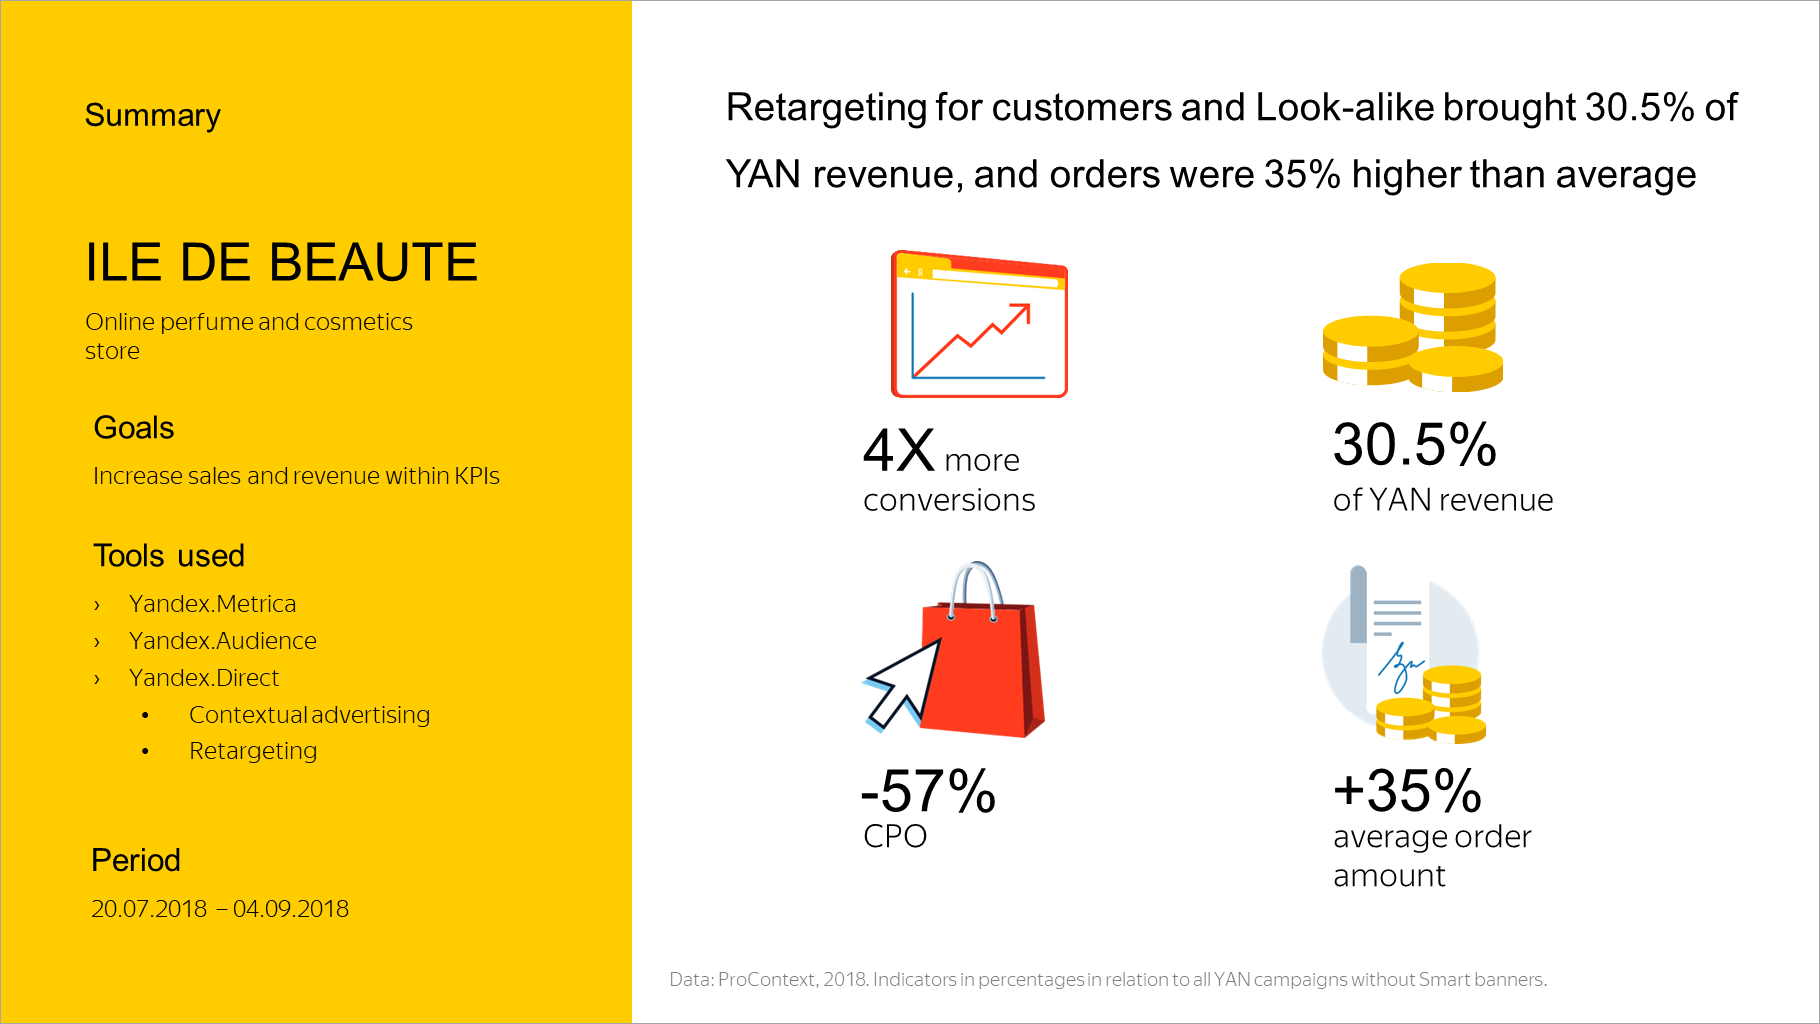 Retargeting for customers and Look-alike brought 30.5% of YAN revenue, and orders were 35% higher than average